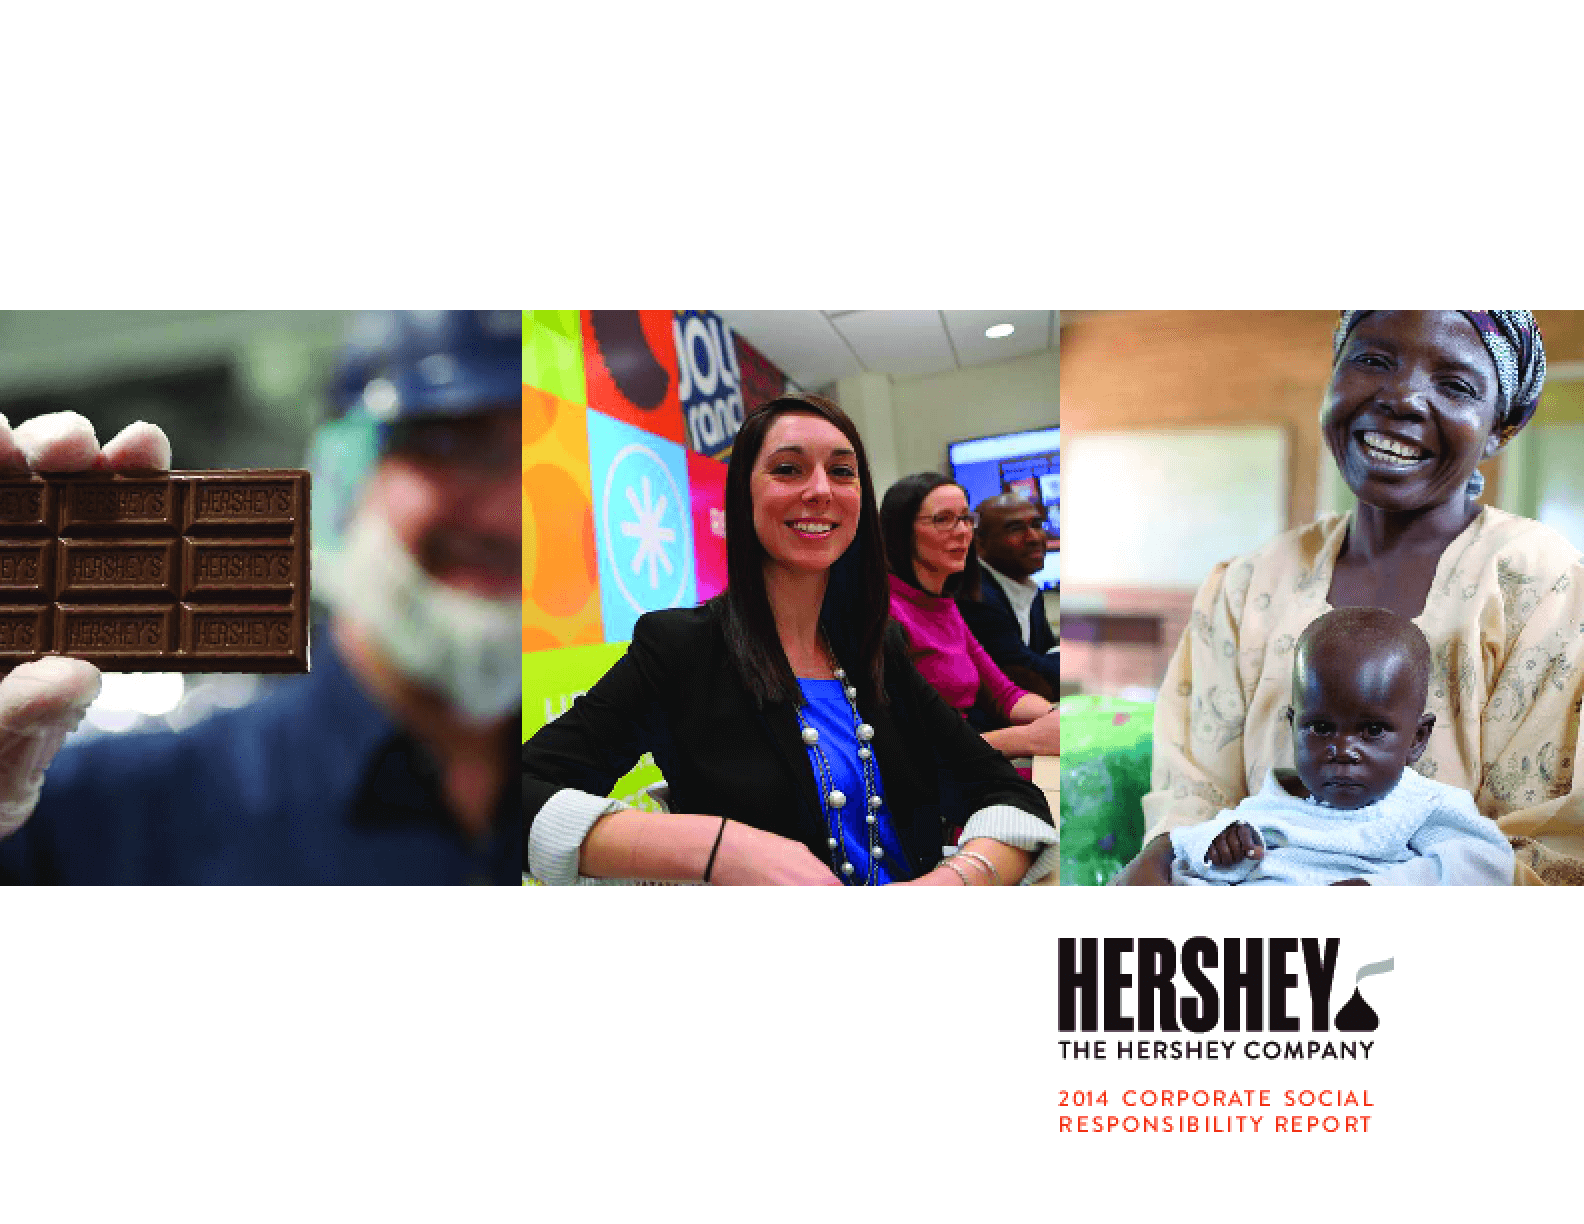 The Hershey Company 2014 Corporate Social Responsibility Report